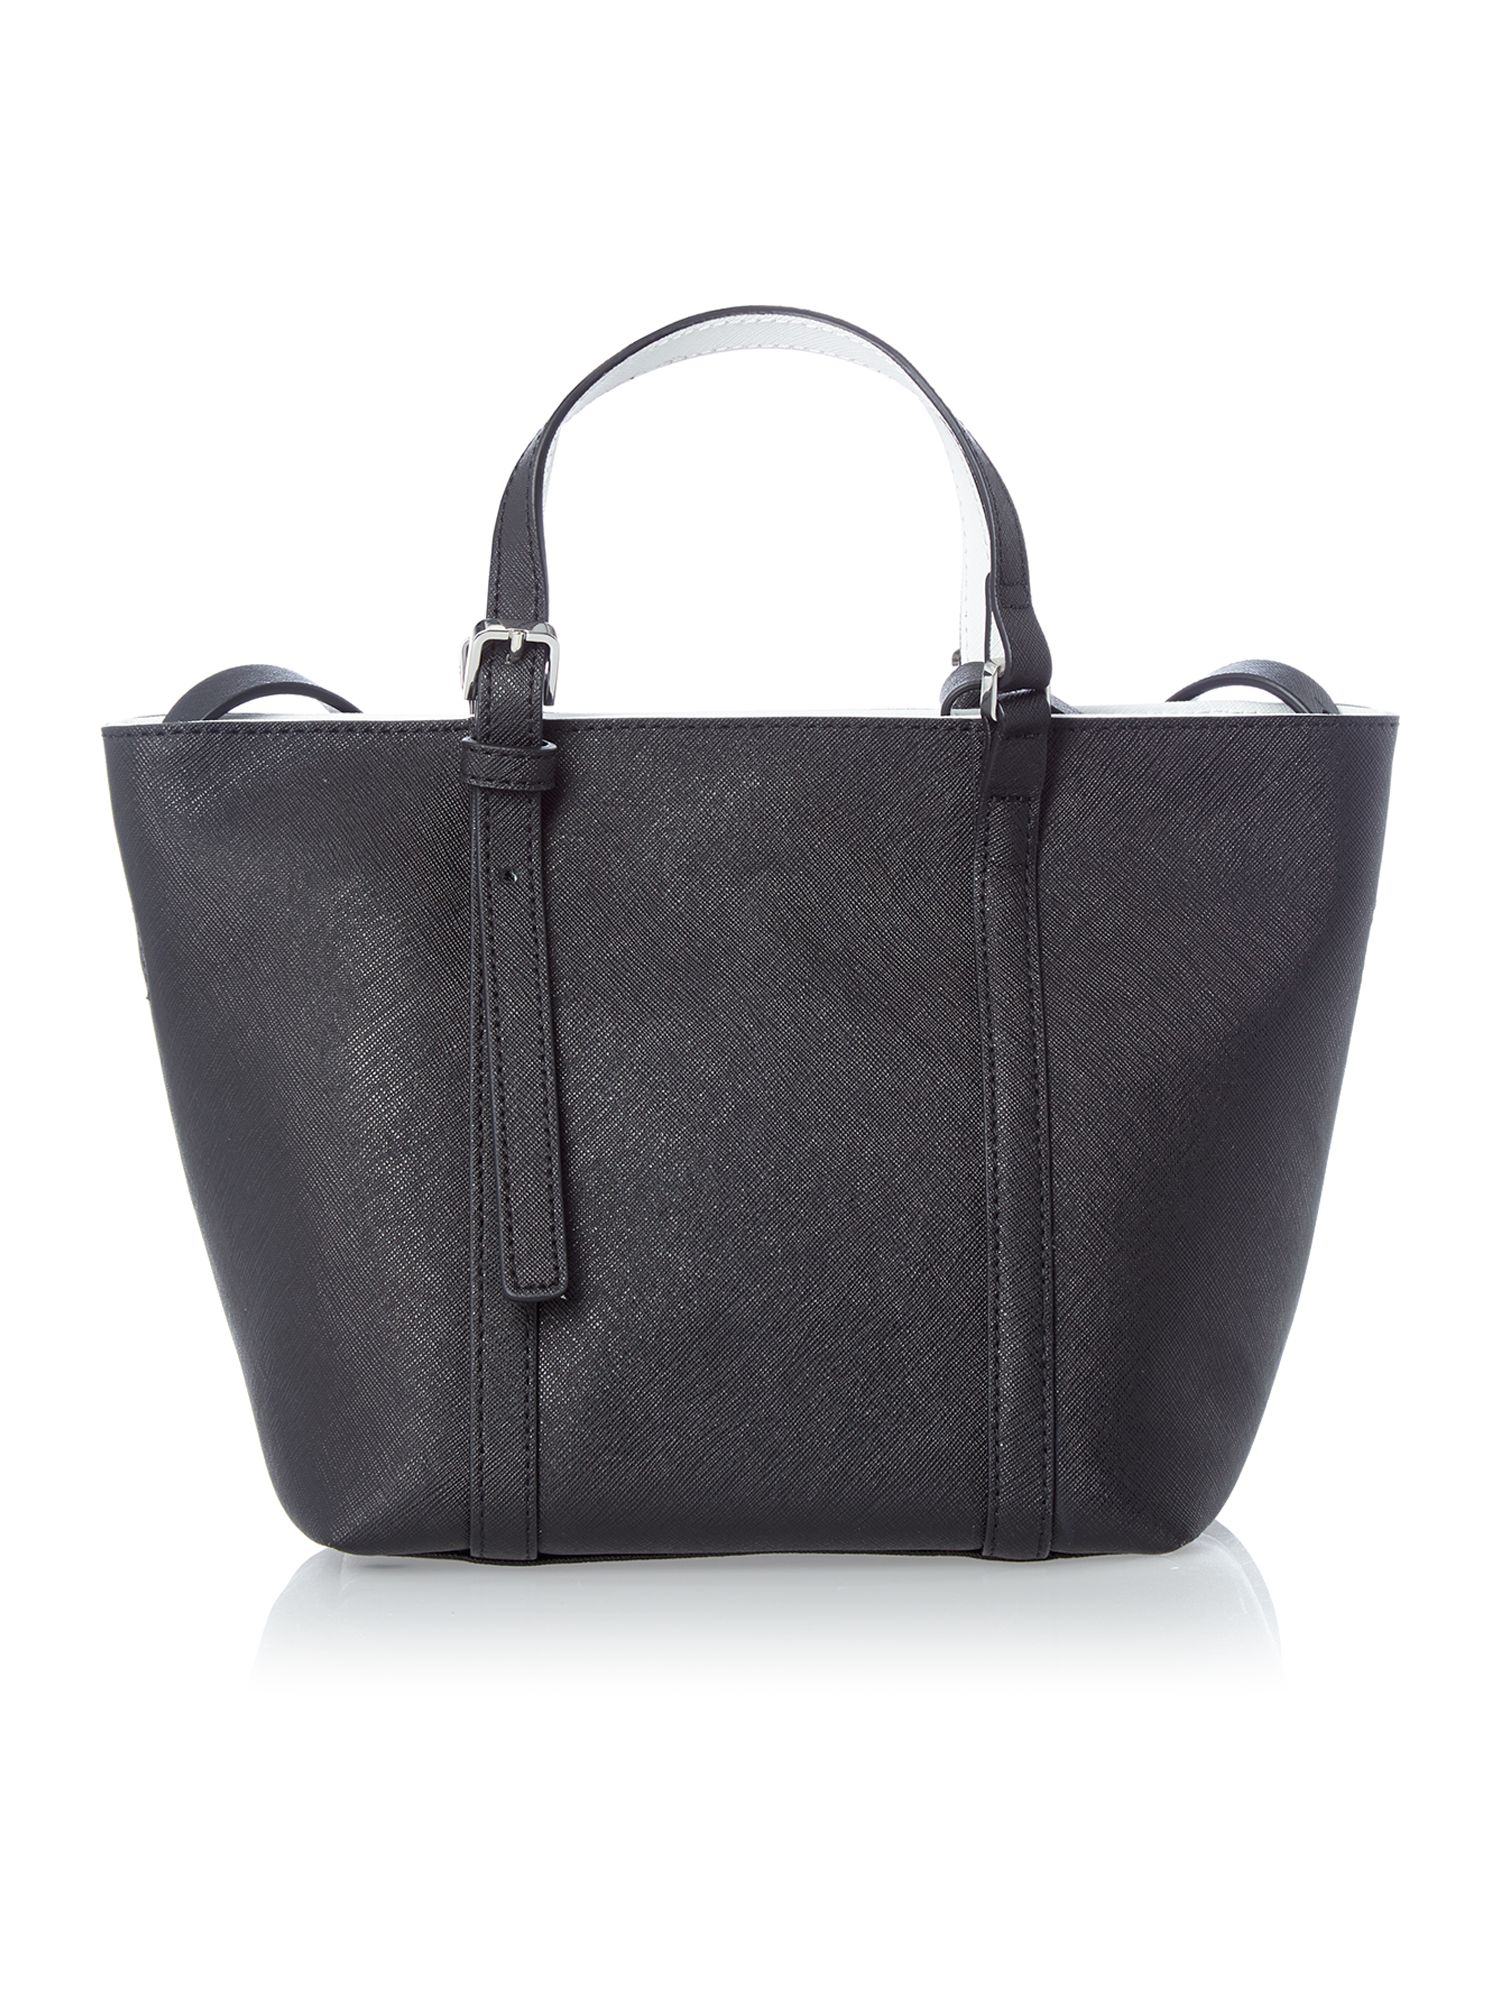 Sofie black small tote bag